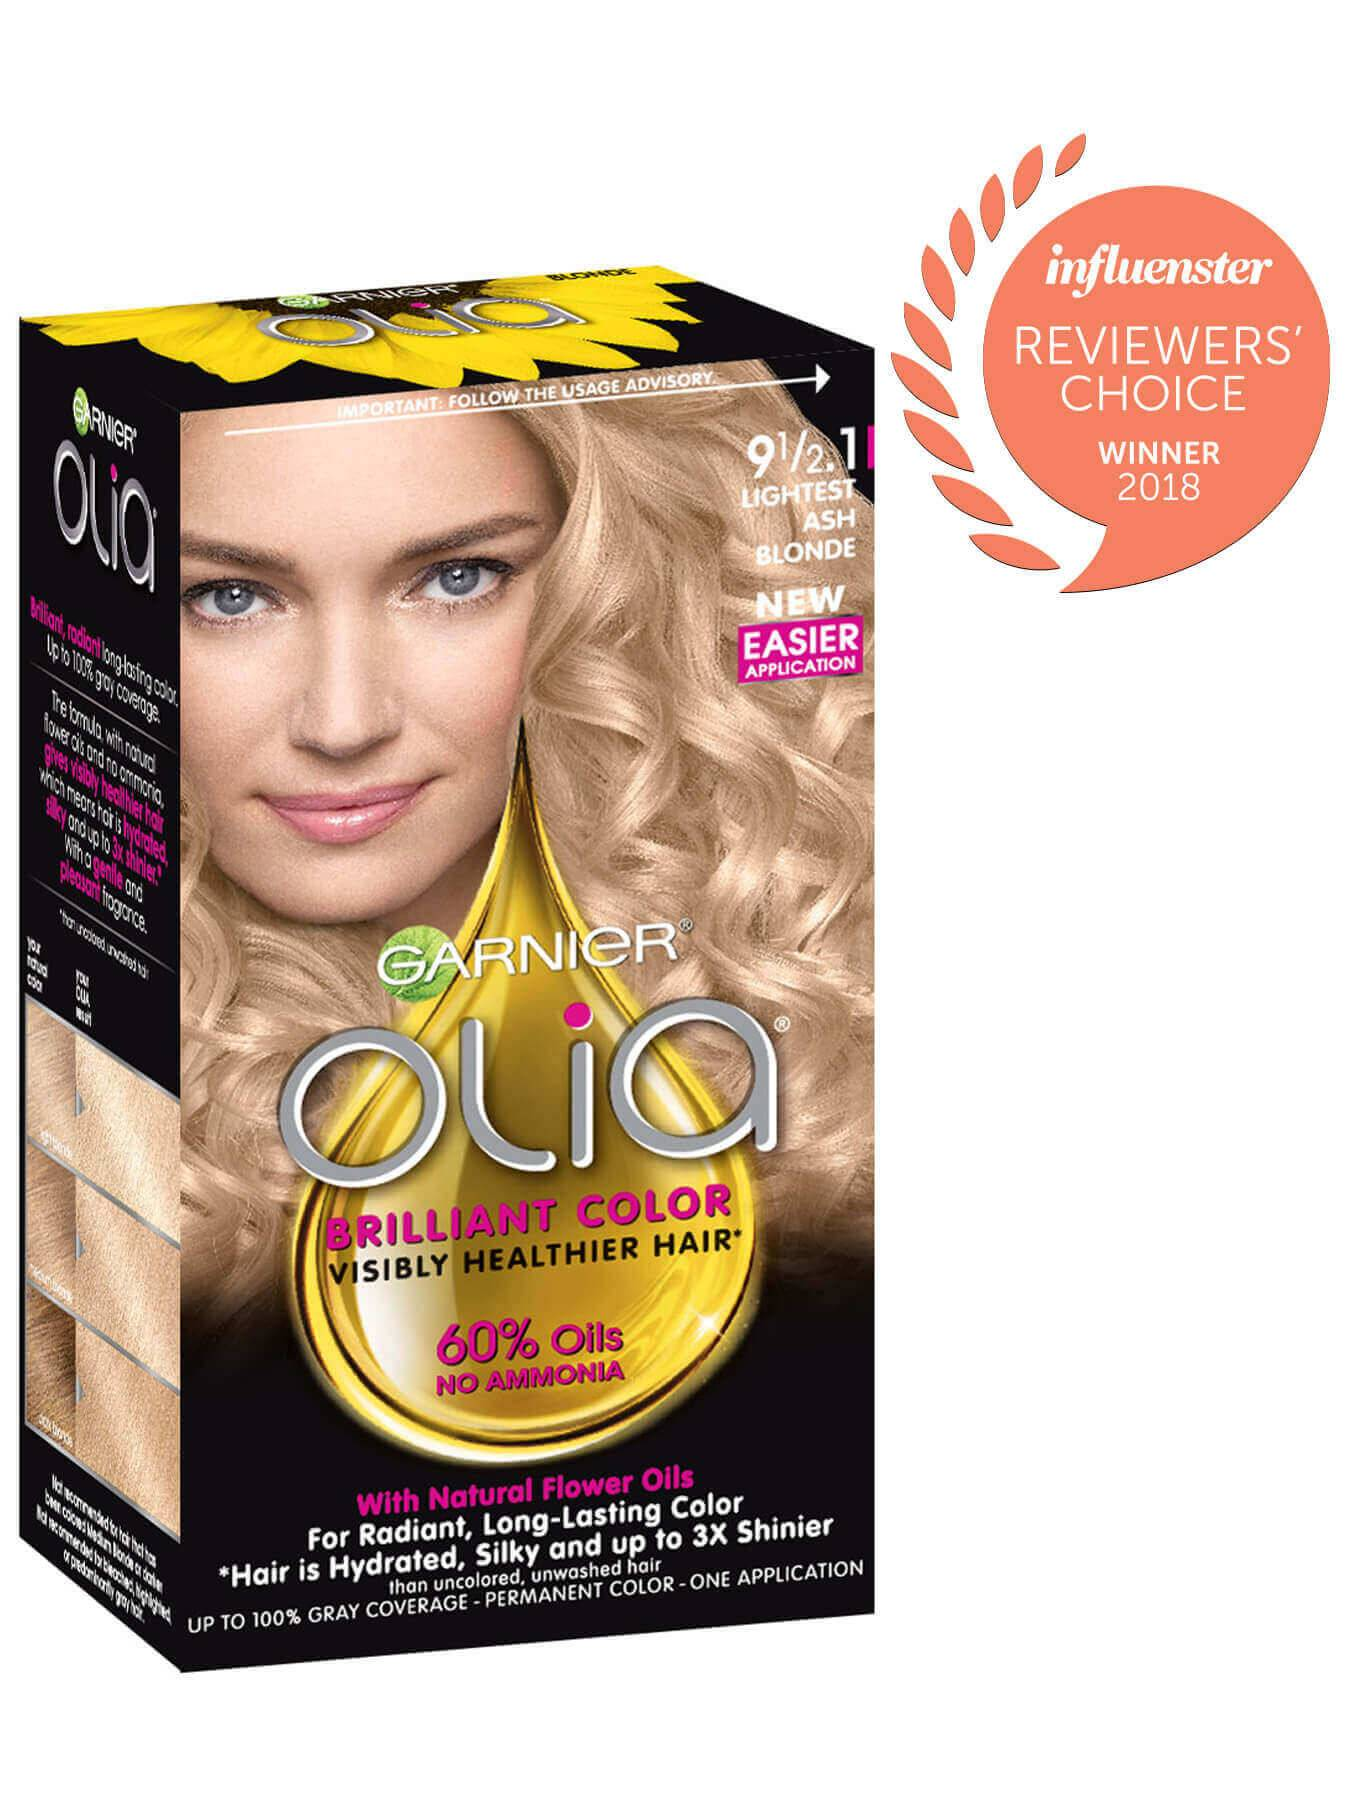 Garnier Olia Packshot Award 9 1/2.1 Lightest Ash Blonde